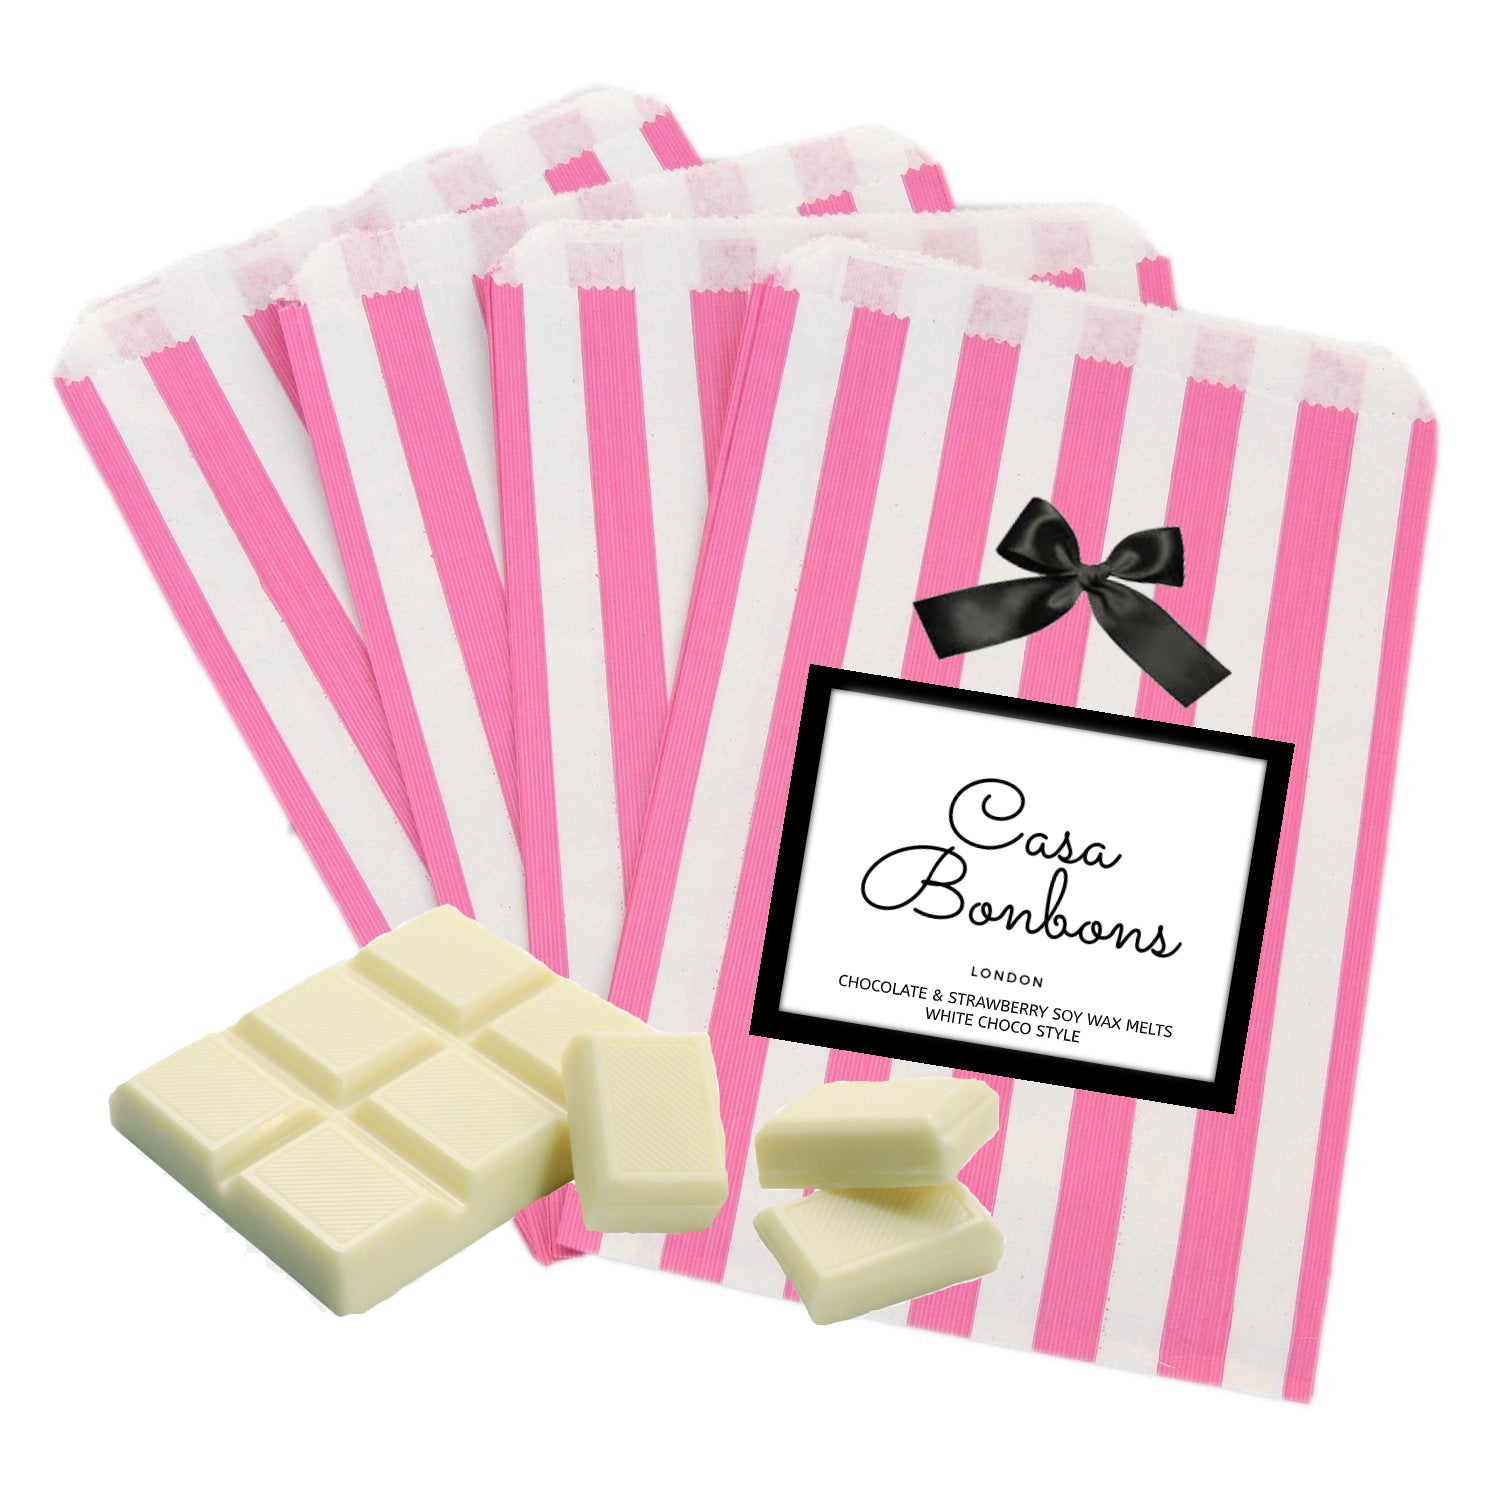 Chocolate & Strawberry gentle scented white chocolate style Soy Wax Melts, PRE-ORDER delivery around 15th of December - natoorio